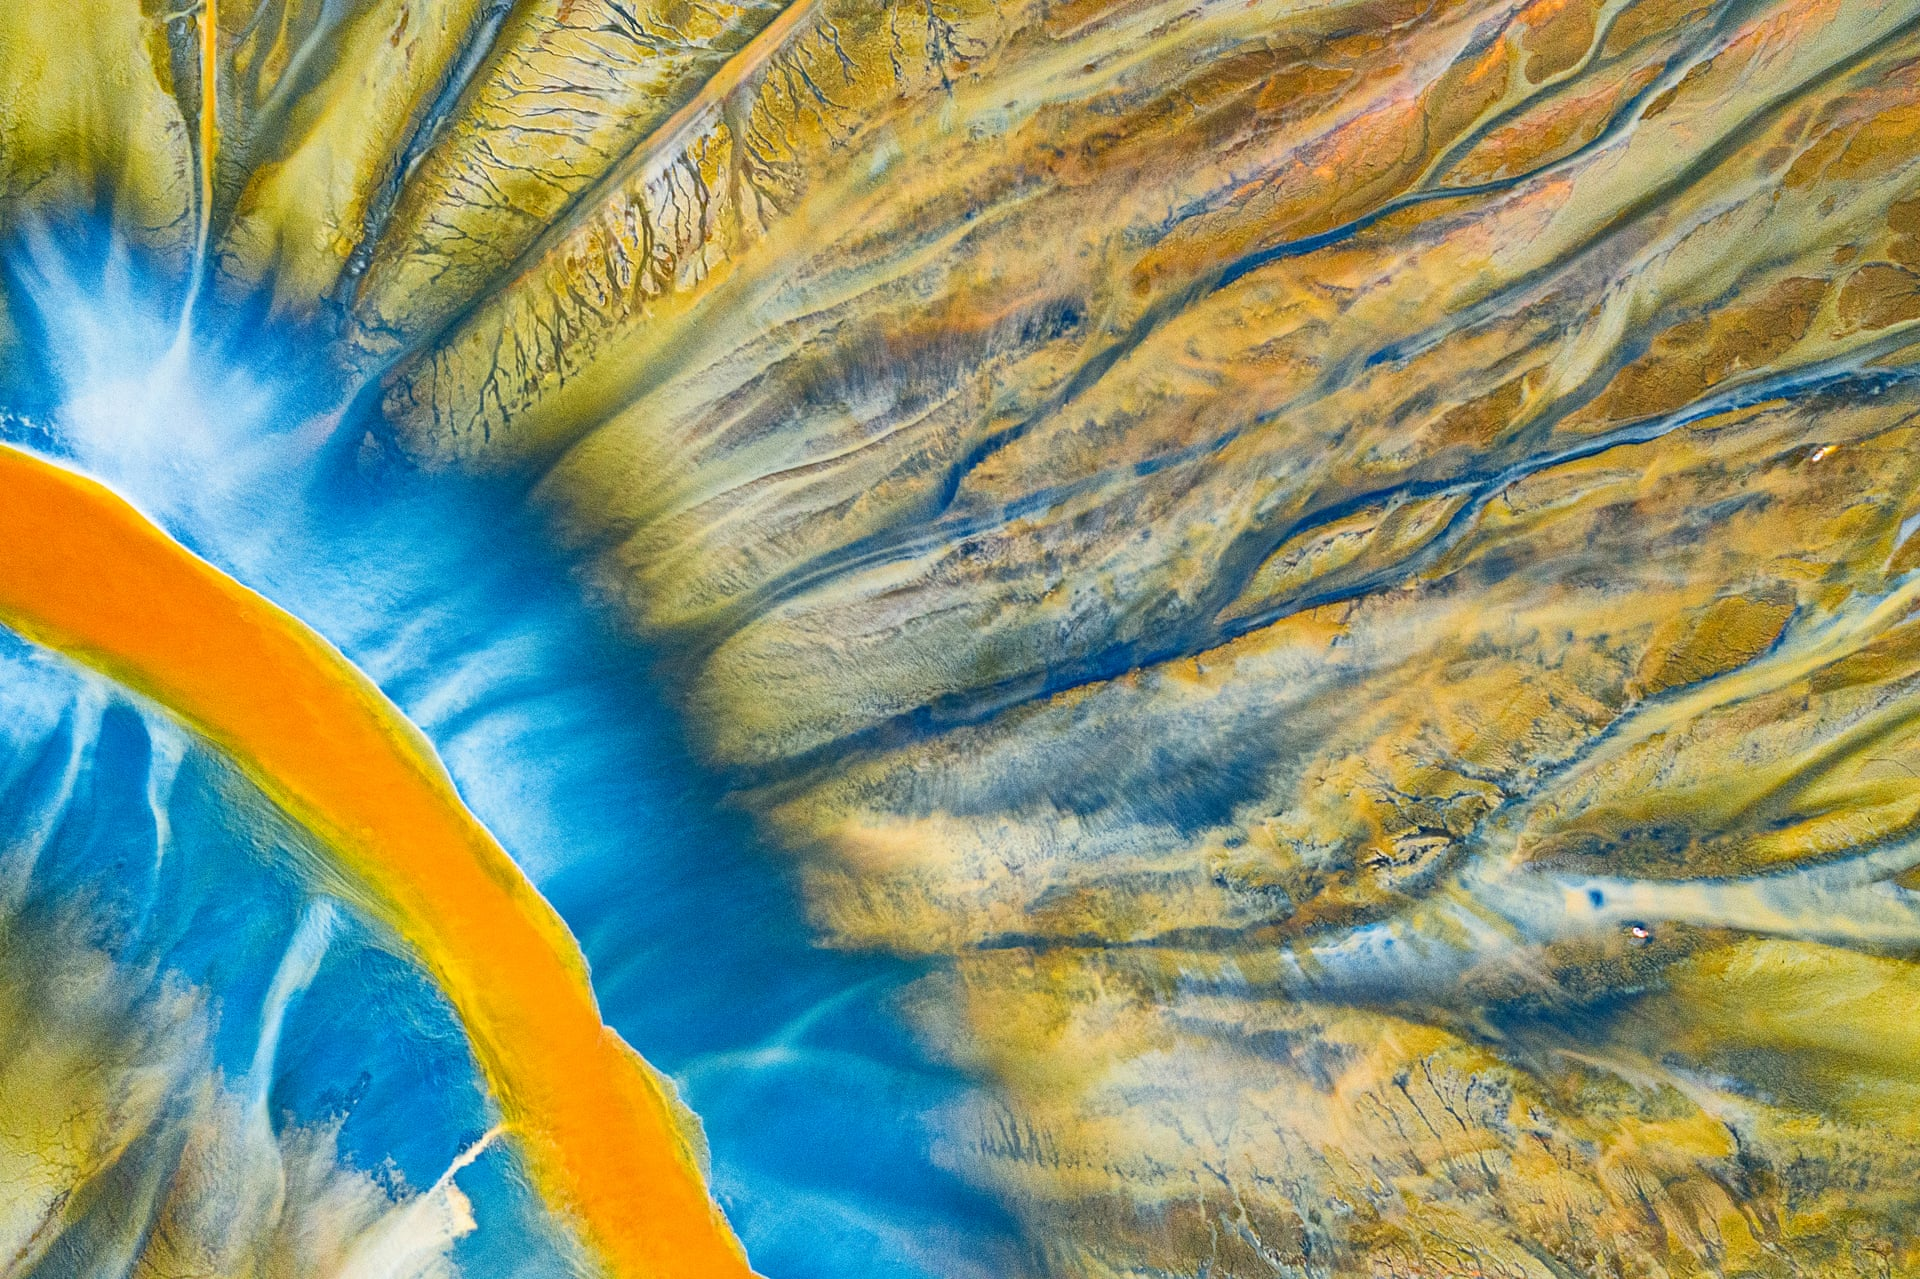 Poisoned River | Abstract WinnerA detailed photograph of a stream filled with poison. 'Poisoned Beauty' is a personal project that tells the story of the natural disaster in the Apuseni Mountains in Transylvania, which was a result of chemical waste generated by copper and gold mining, but in a beautifully abstract wayPhotograph: Gheorghe Popa/Drone Photography Awards 2021